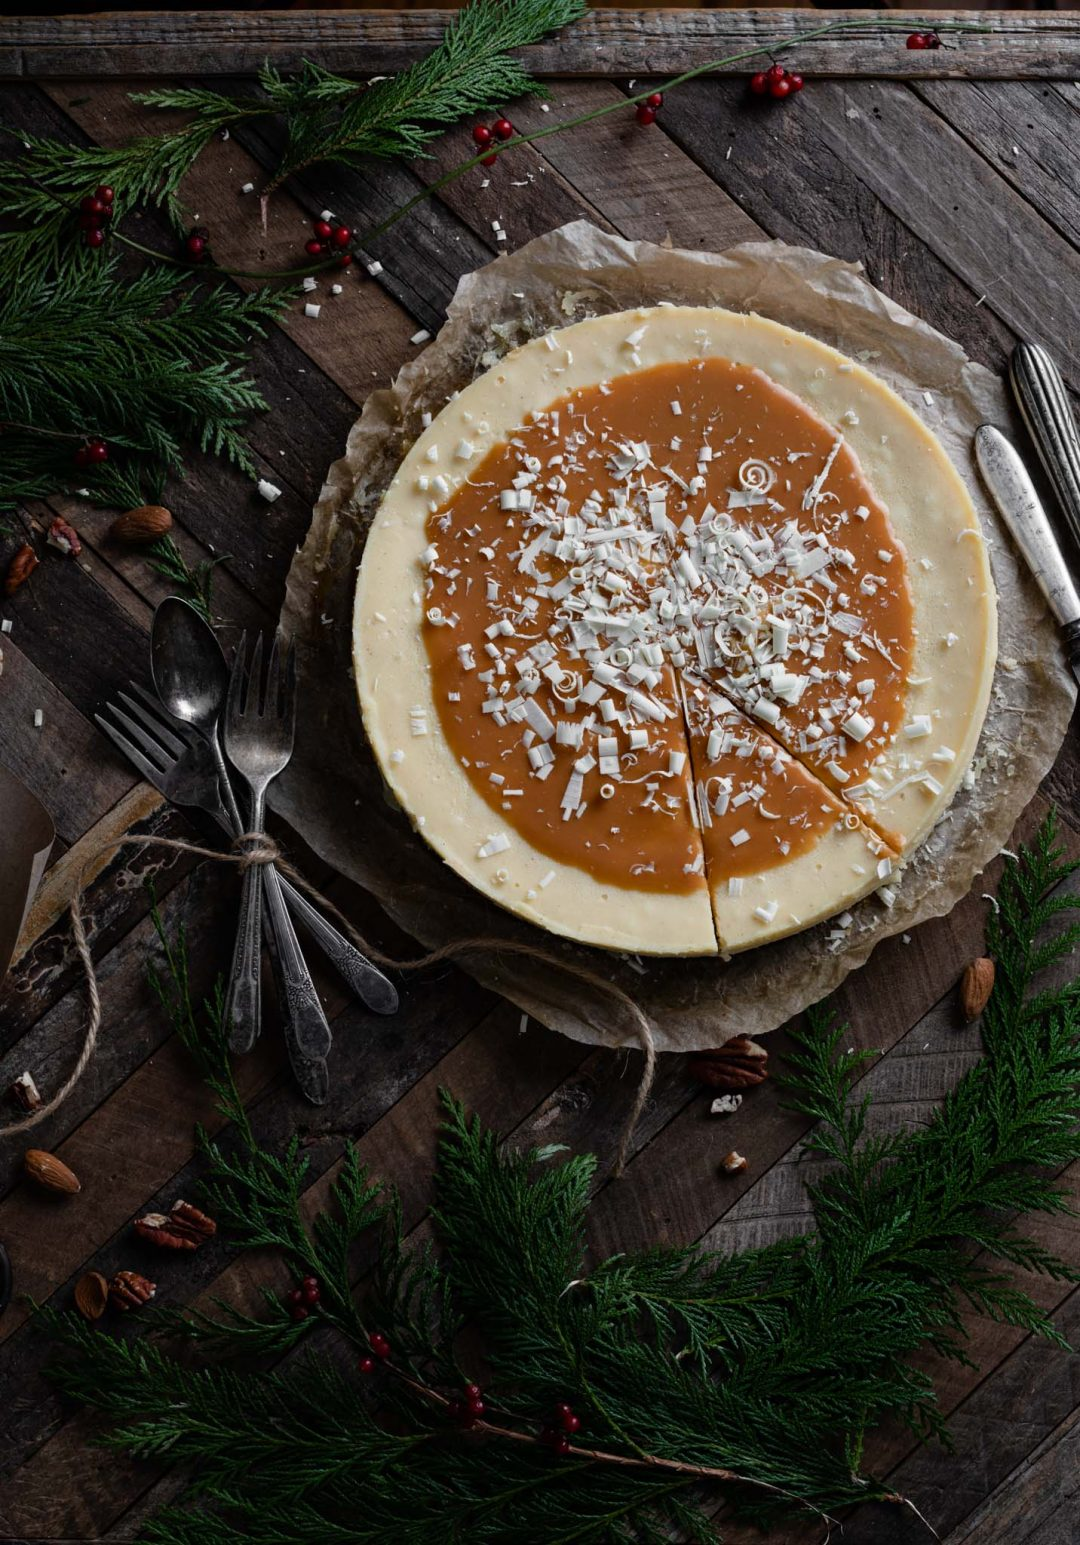 Caramel topped cheesecake on wood table with a slice cut.